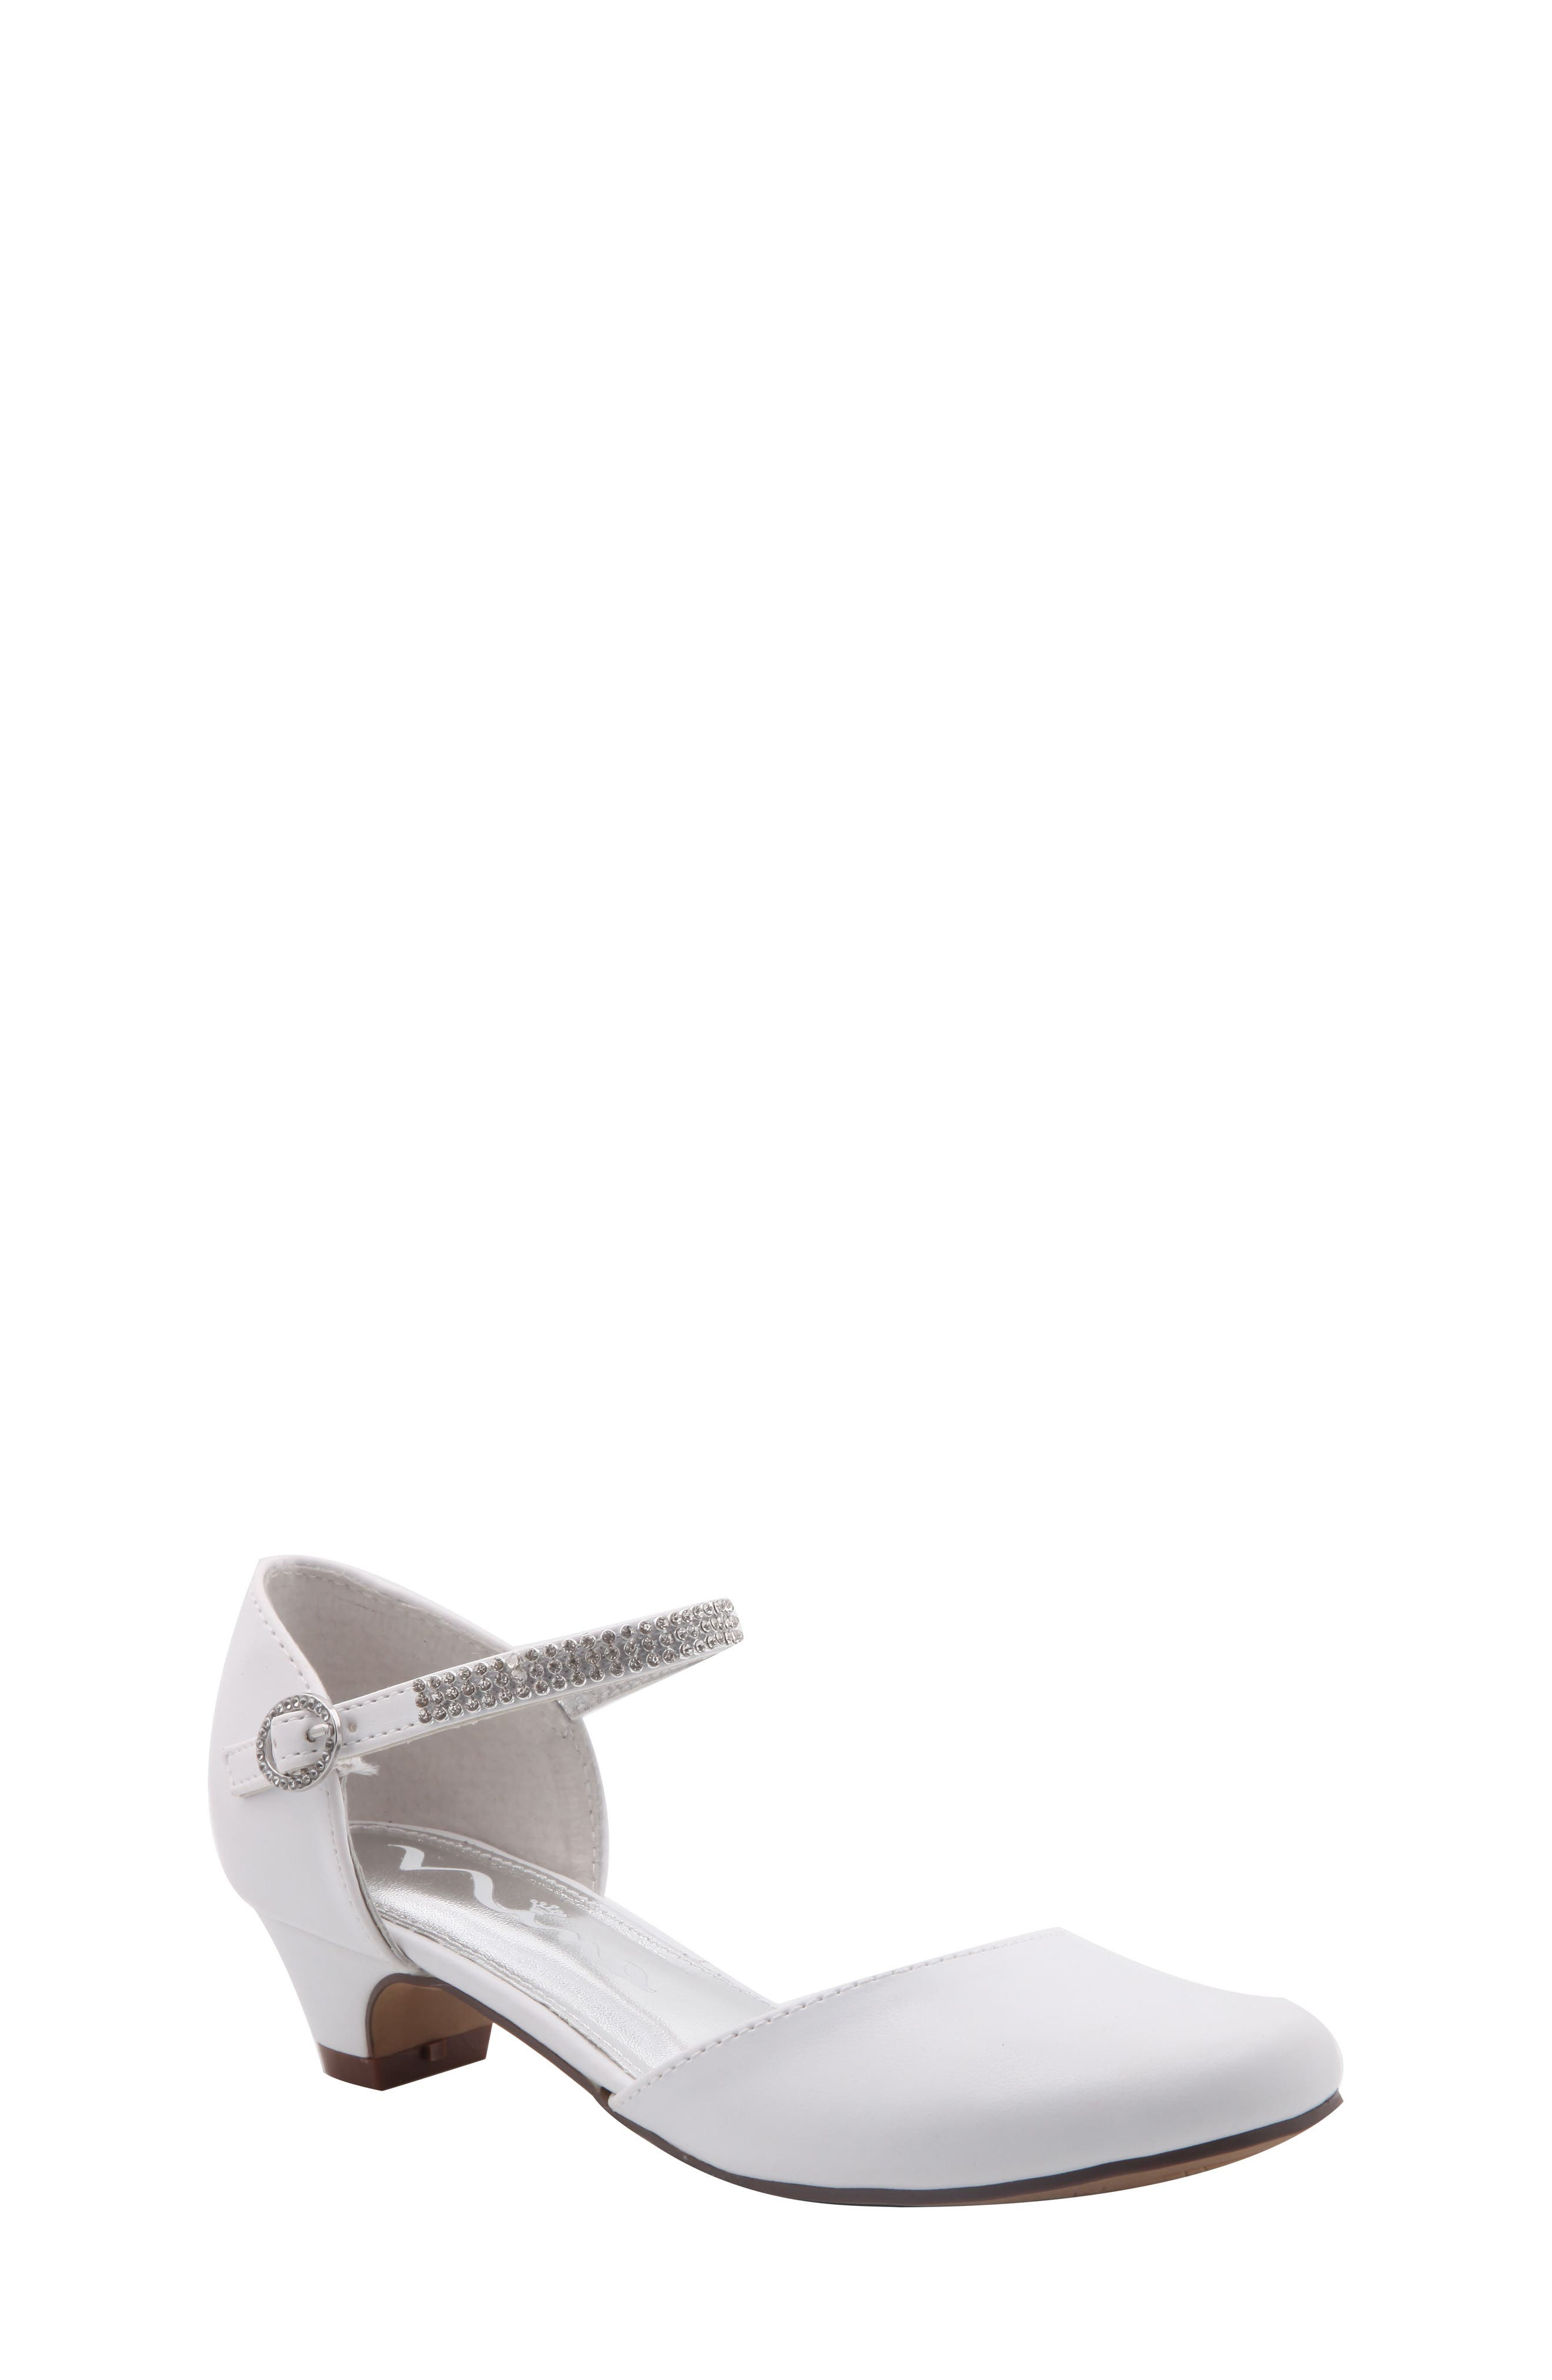 Cera Low Embellished Pump,                             Main thumbnail 1, color,                             White Smooth